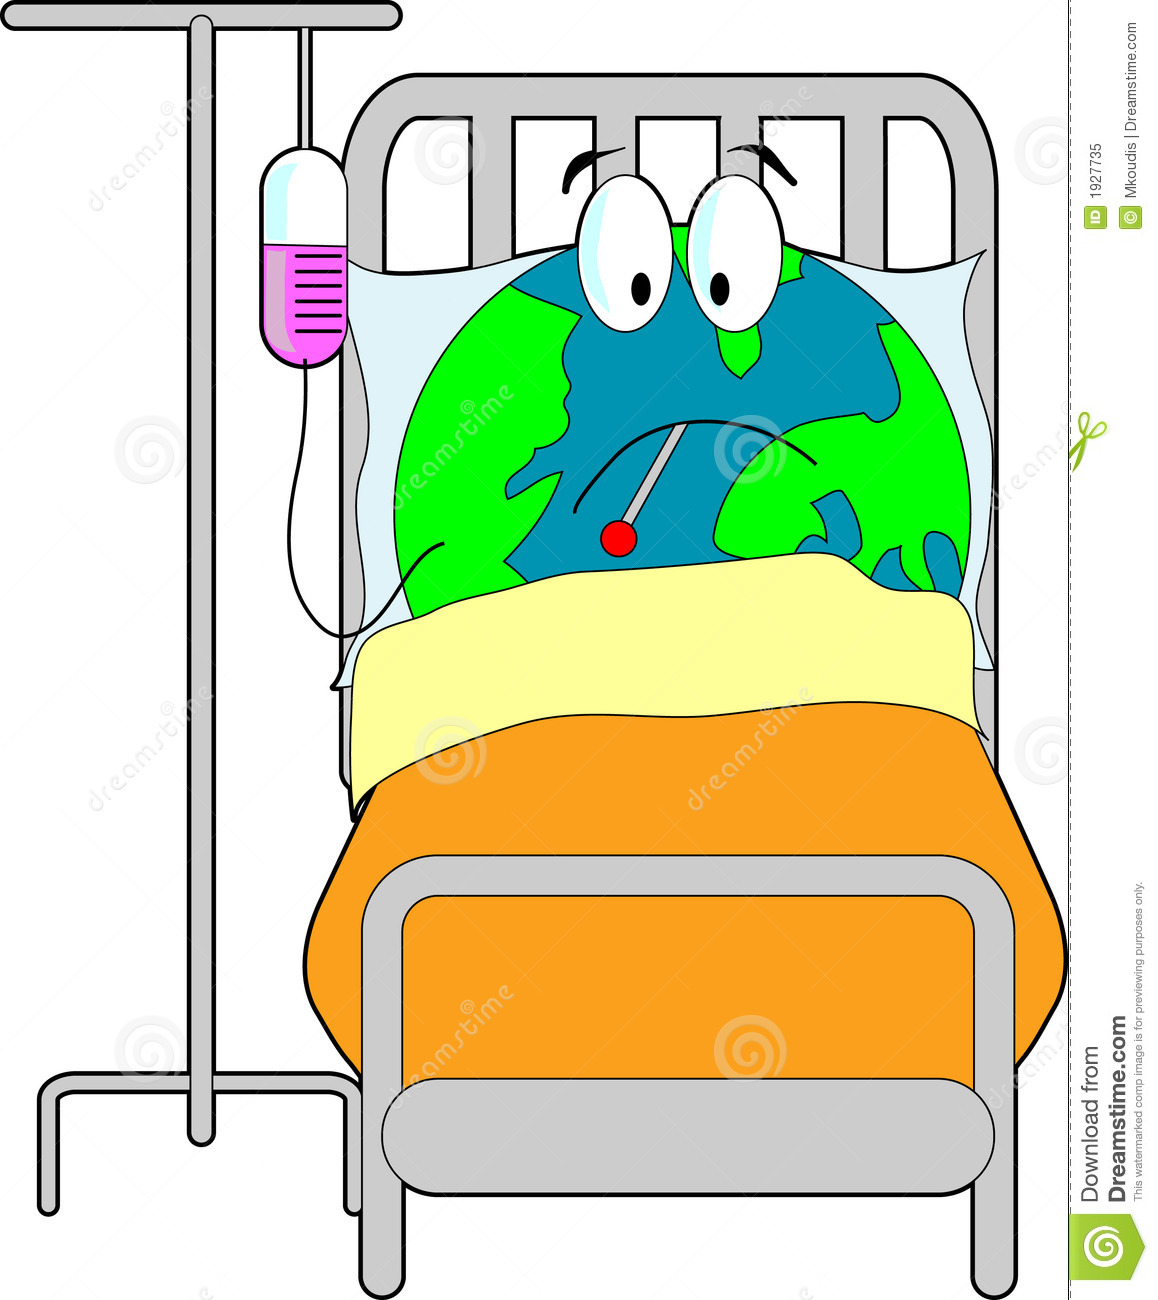 Sick Earth stock vector. Illustration of america f0a5925efb7